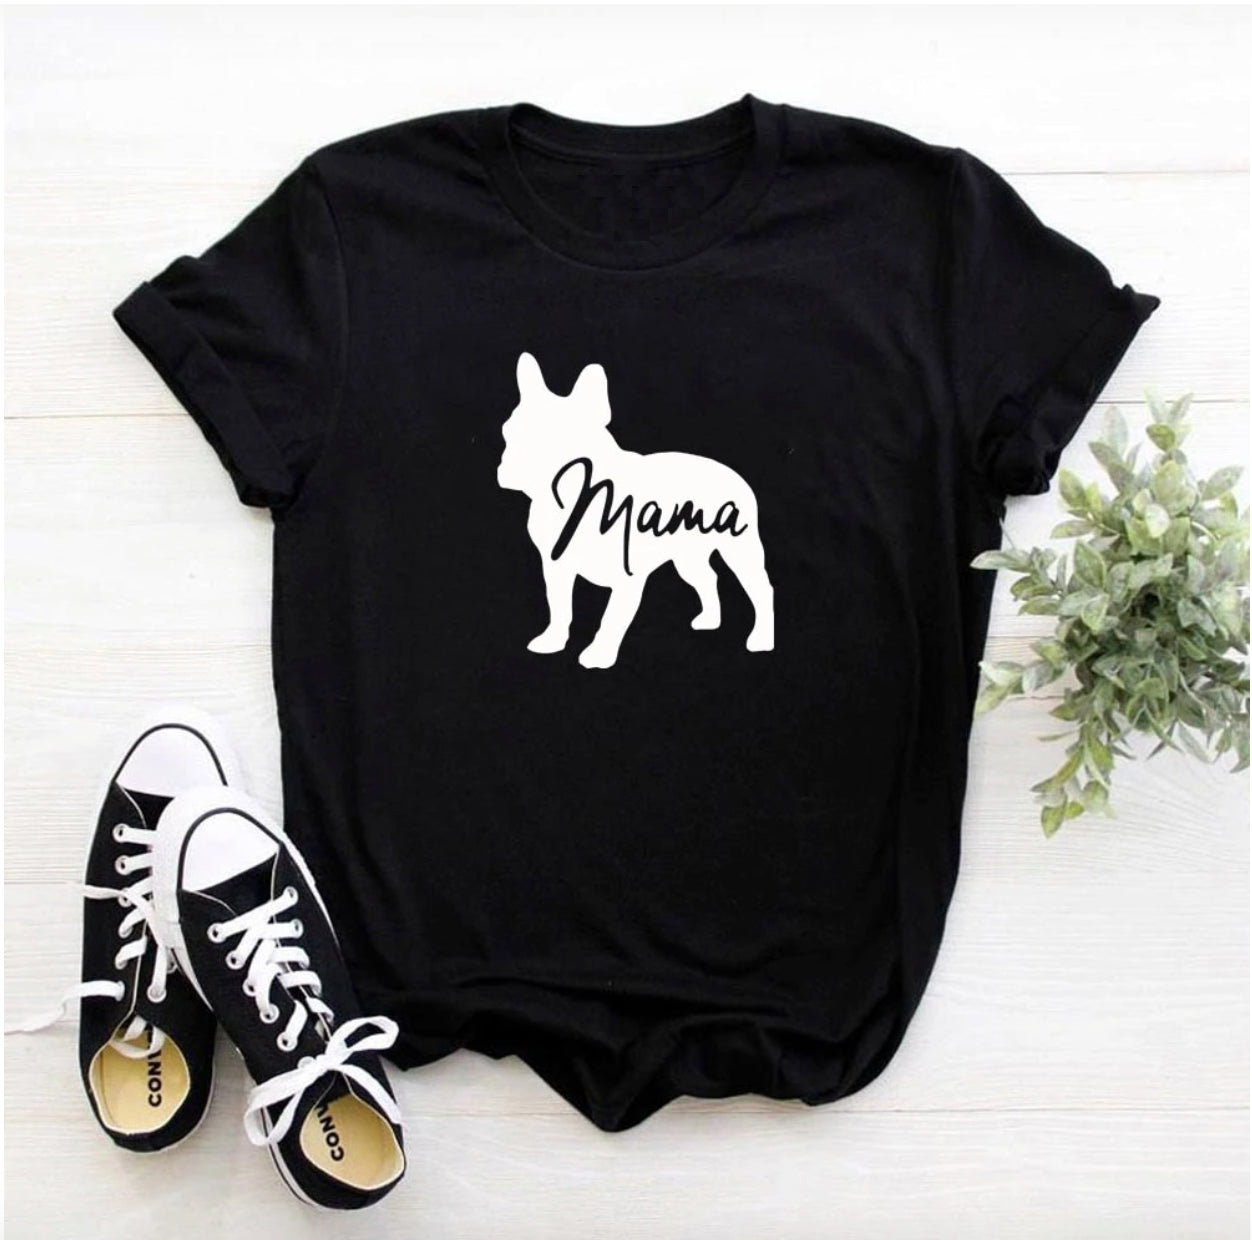 Frenchie Mama - Unisex T-Shirt - Frenchie Bulldog Shop